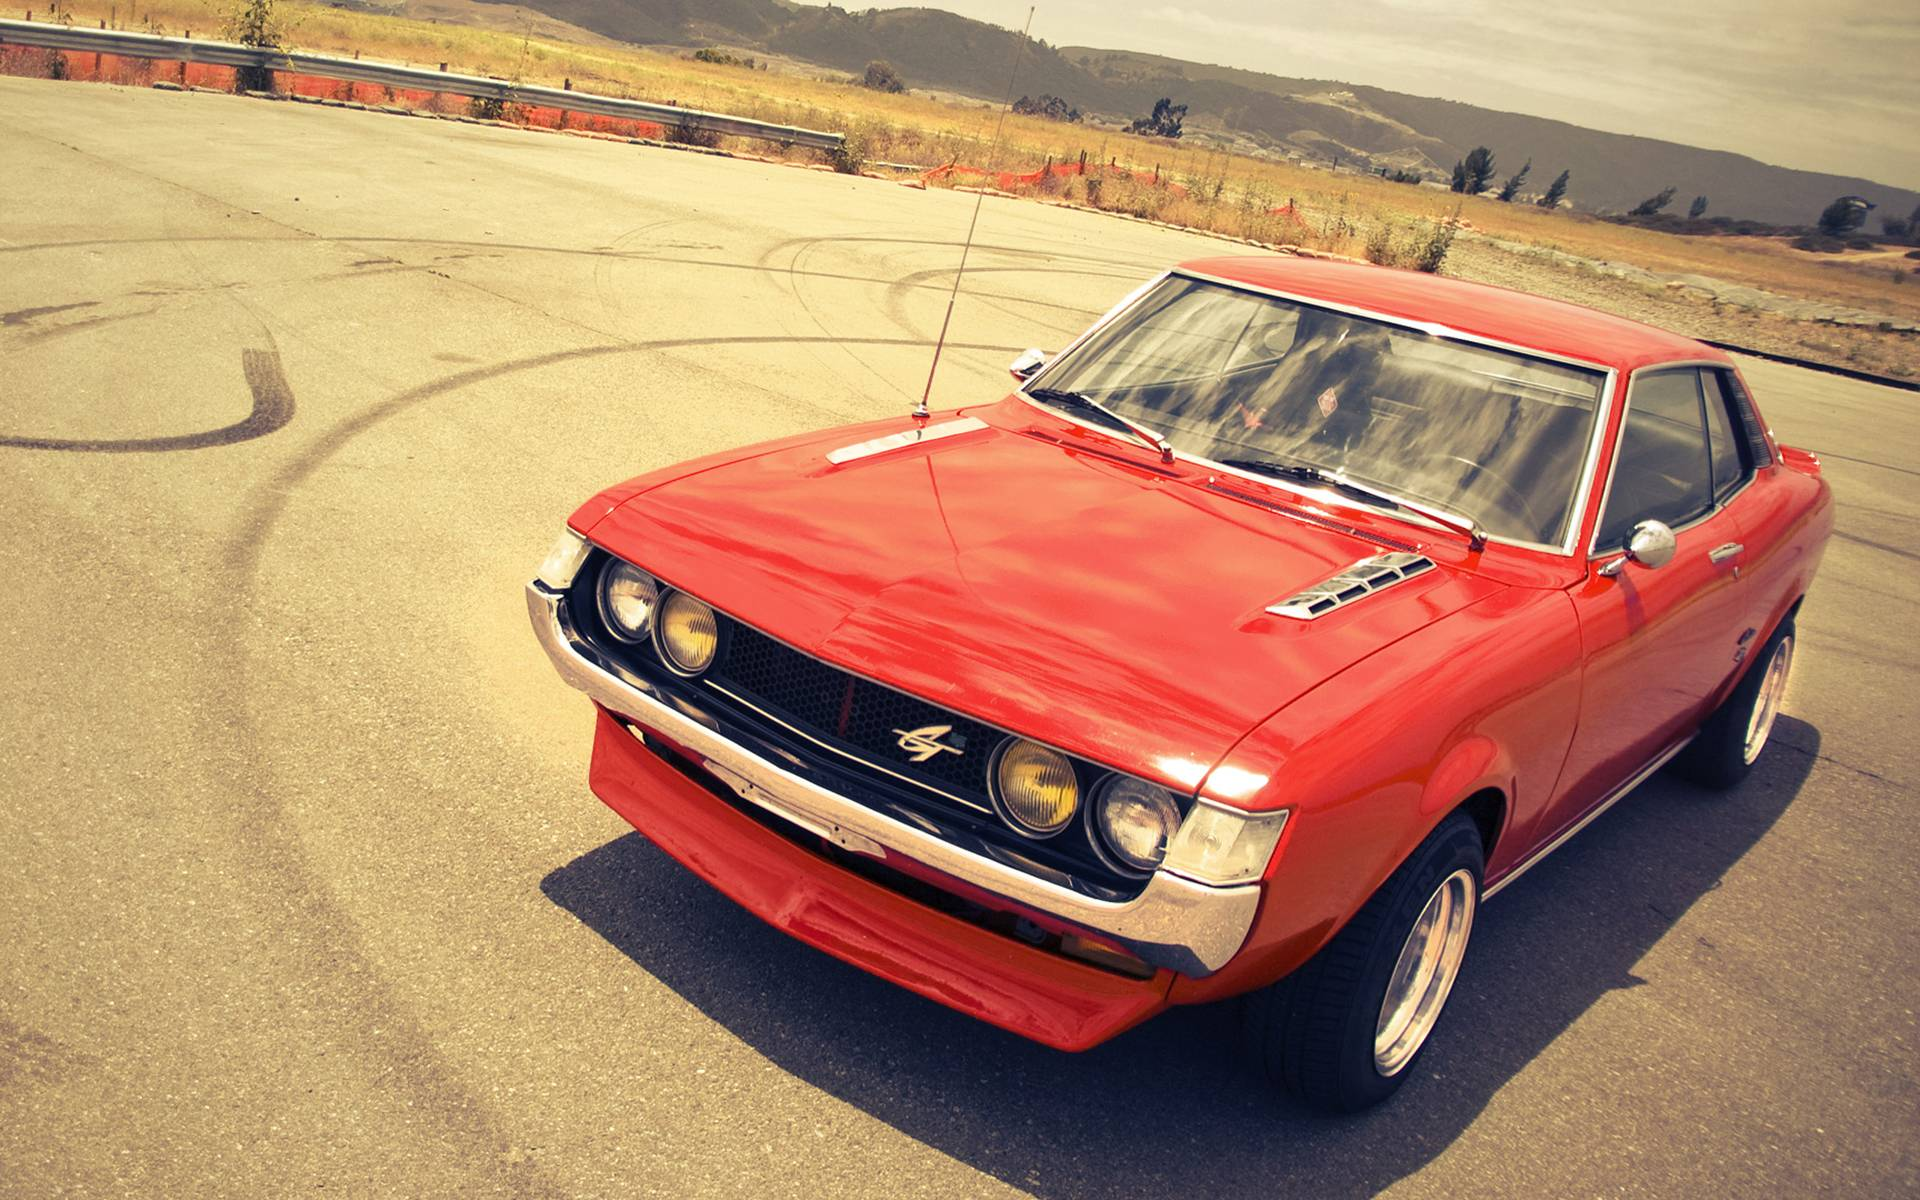 Toyota Celica Ta22 Gt Hd Wallpaper - Toyota Celica Wallpaper Hd , HD Wallpaper & Backgrounds